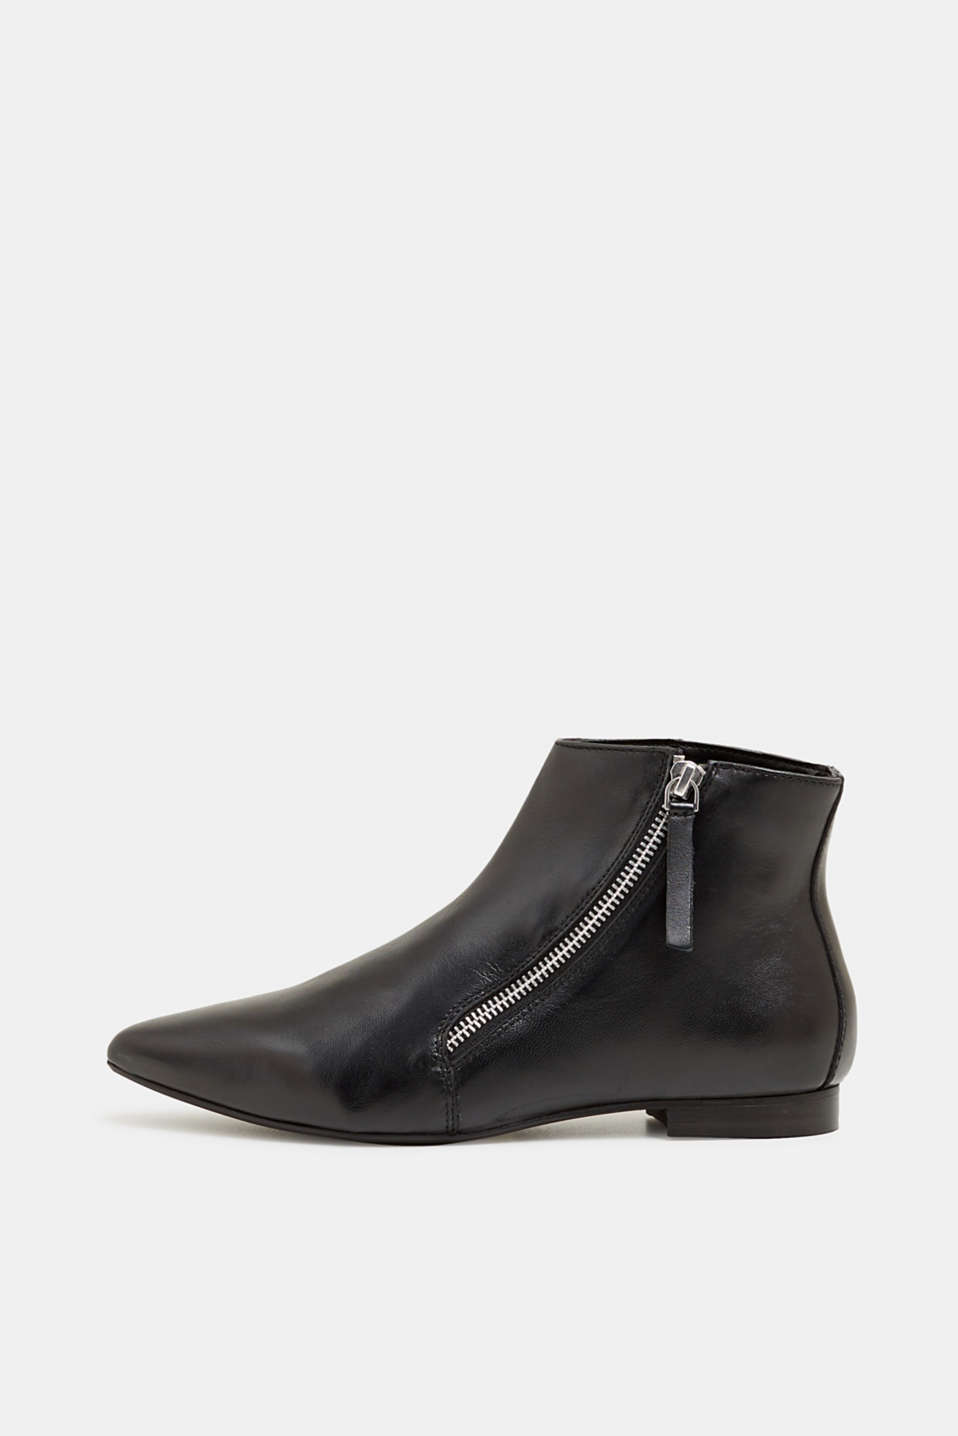 Esprit - Zip ankle boots in nappa leather